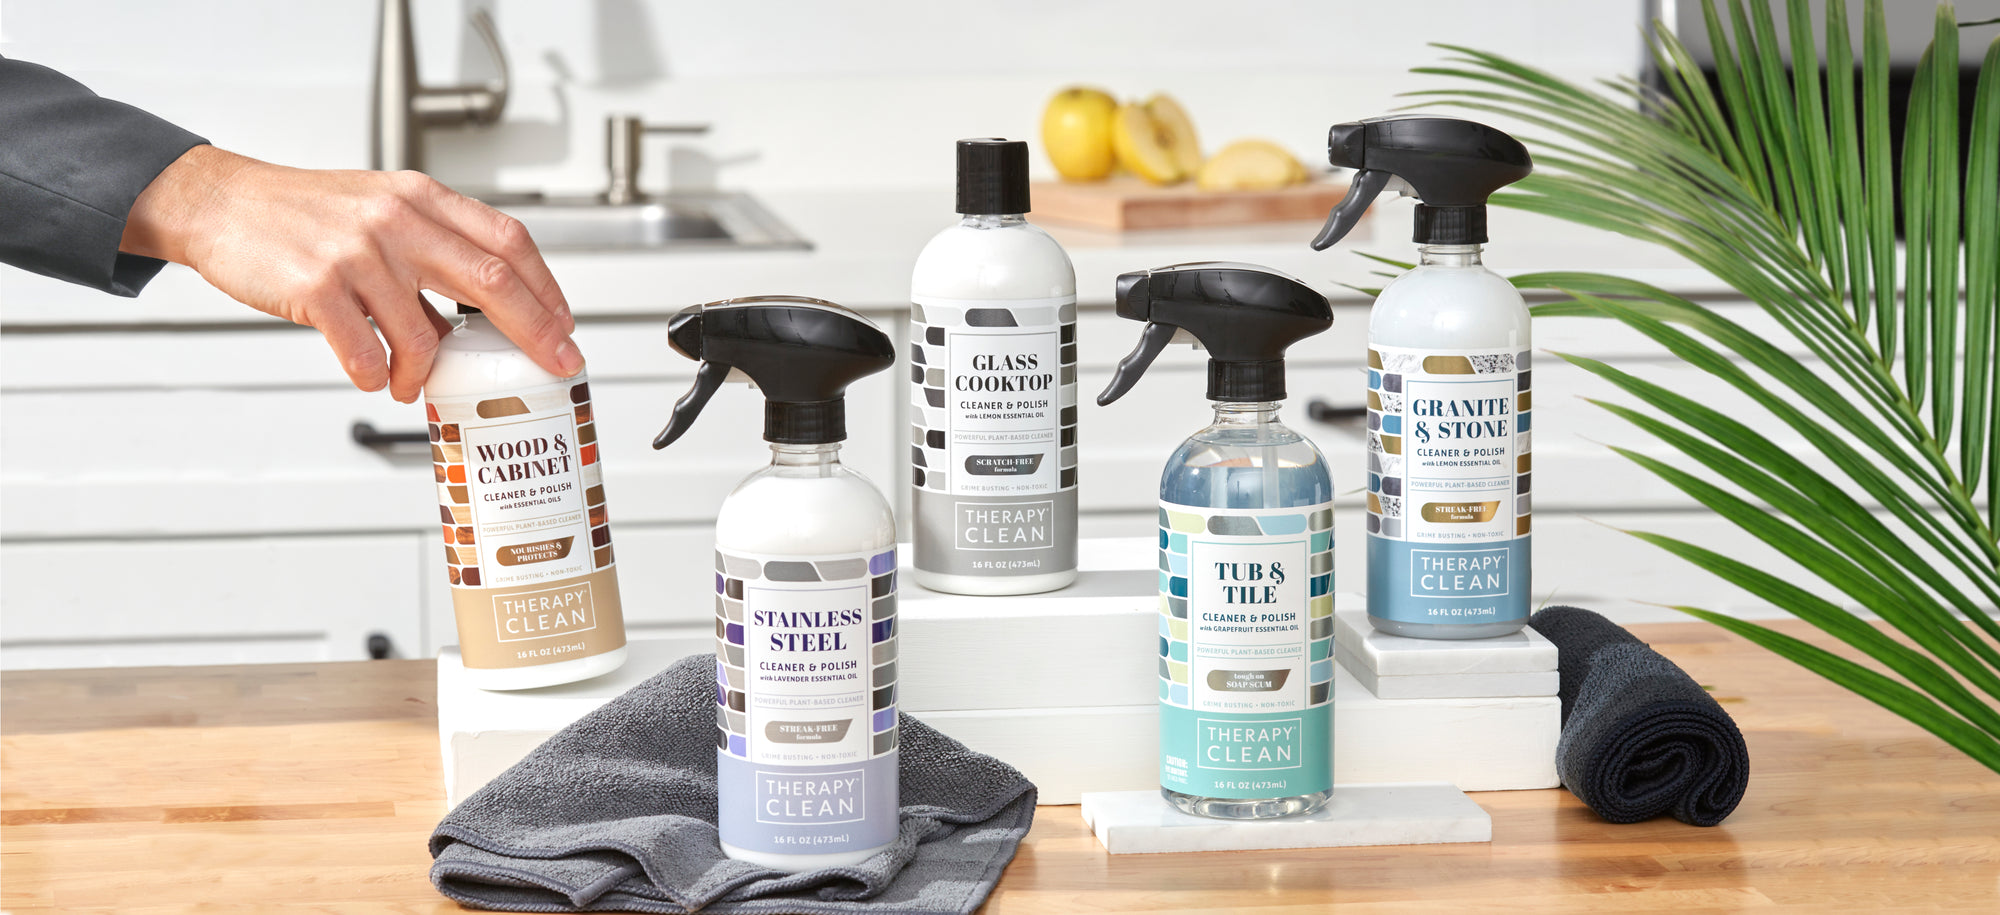 therapy clean household cleaning products